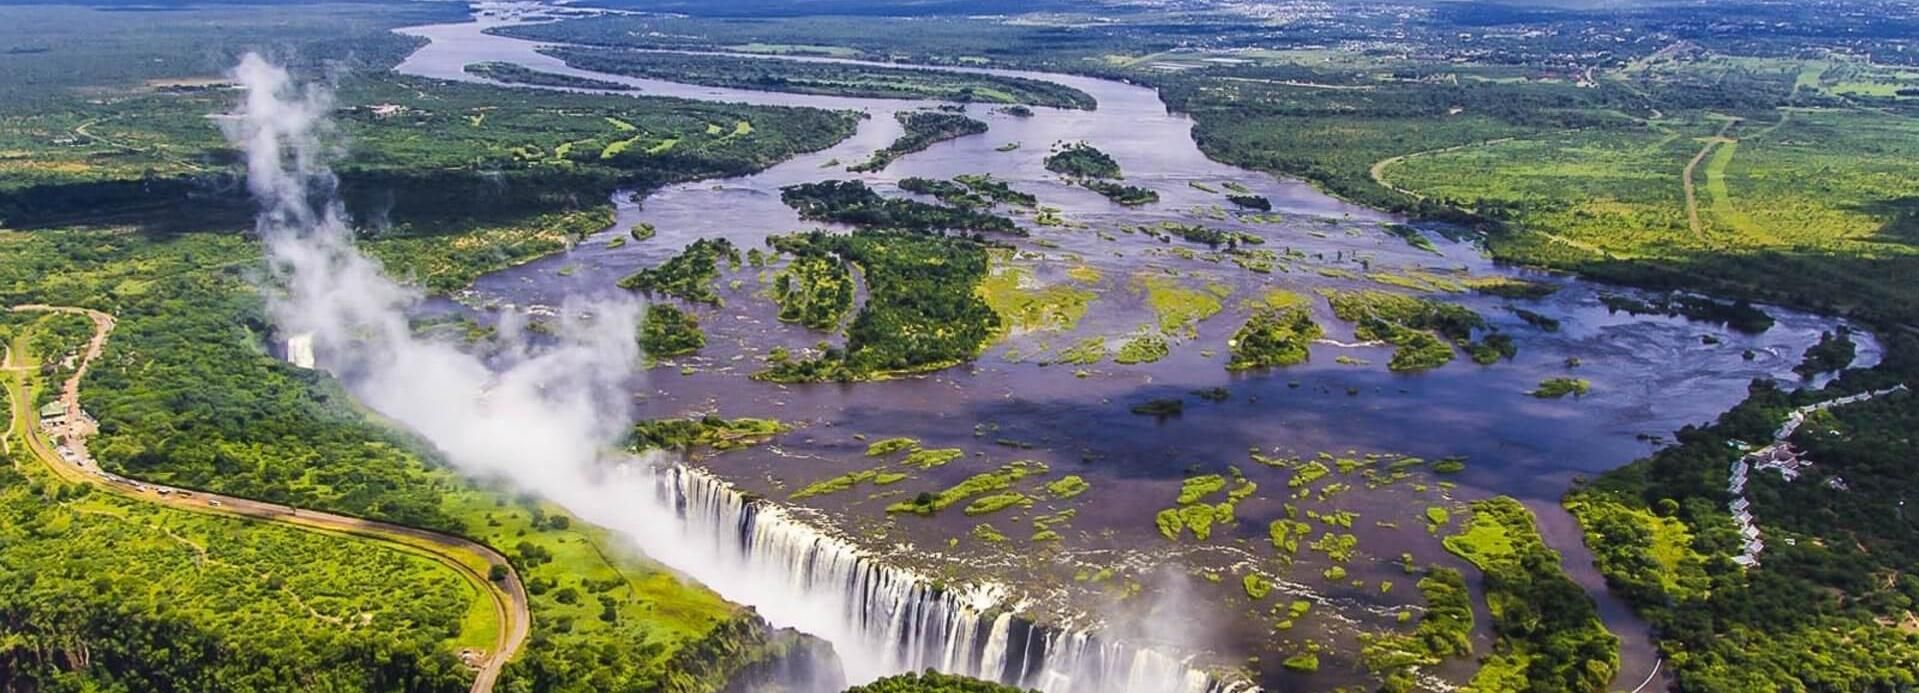 Victoria Falls: Full-Day Guided Sightseeing Tour